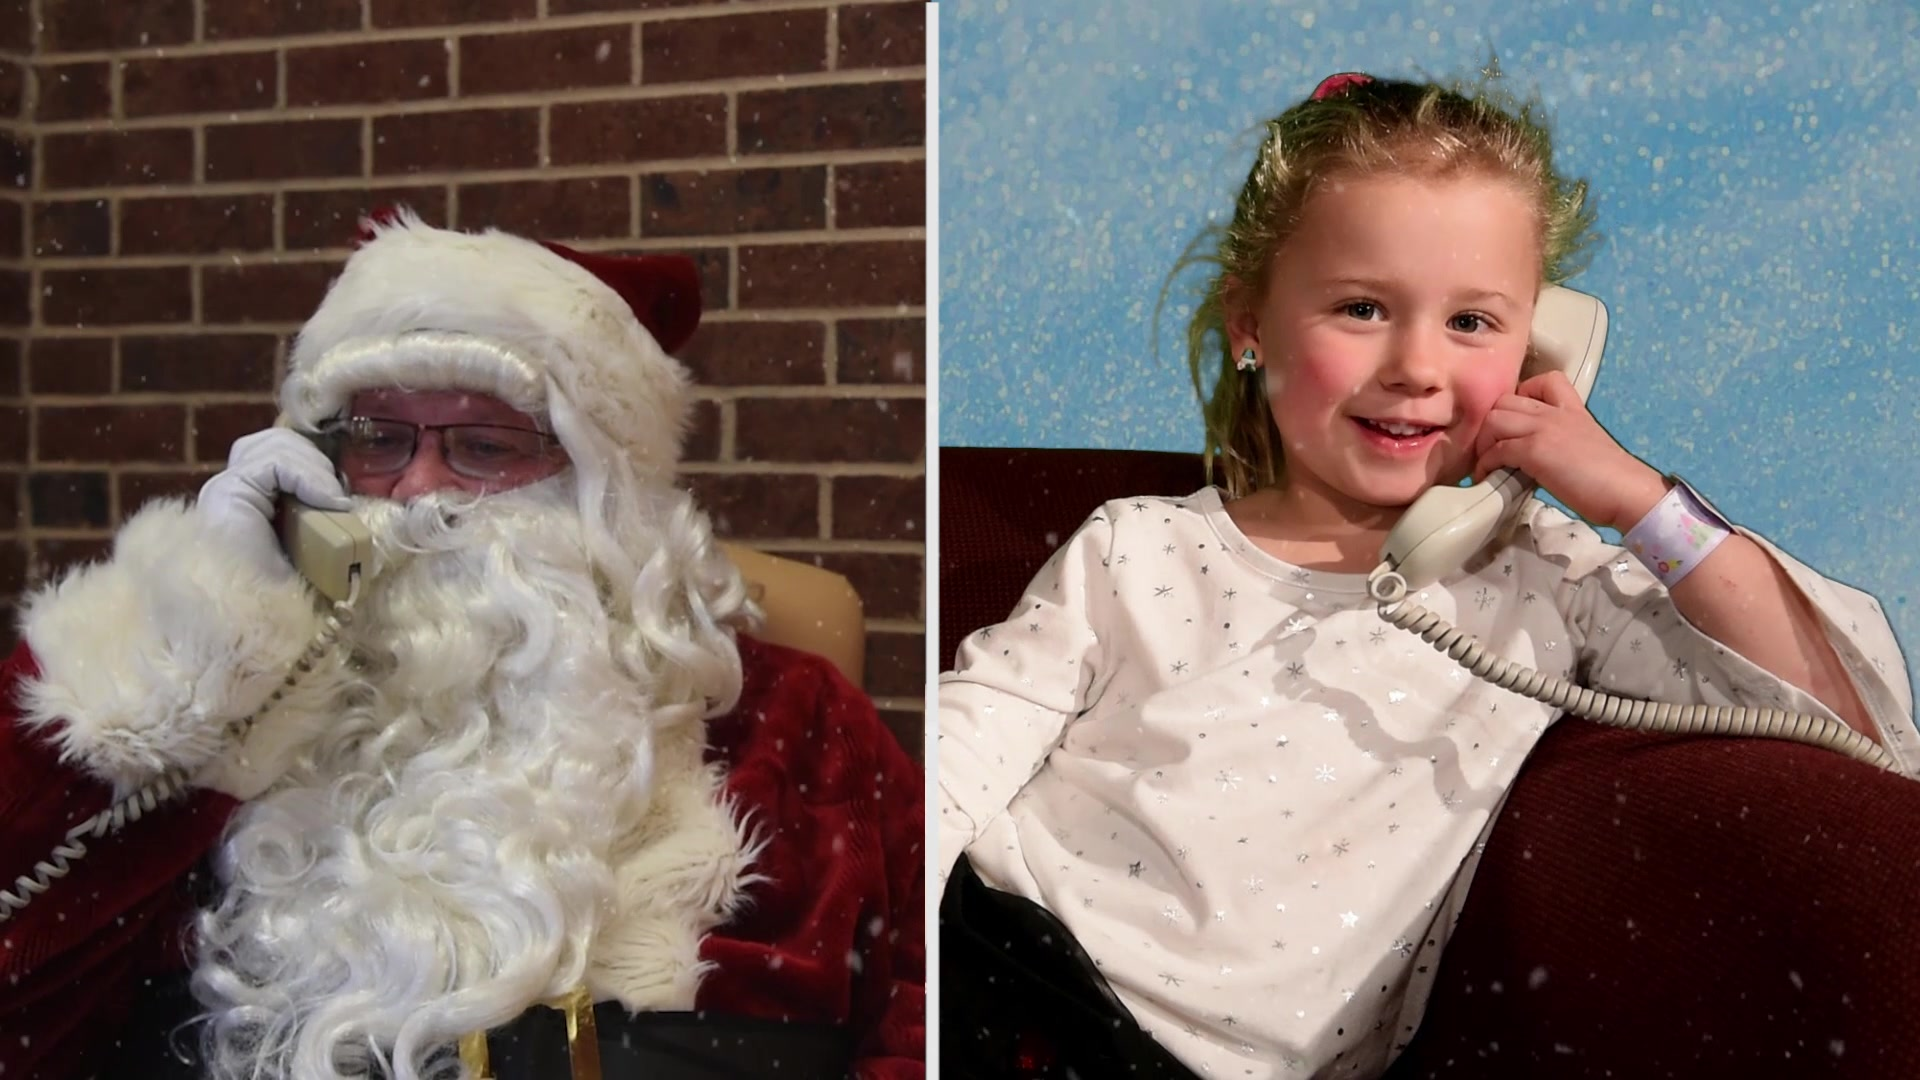 Children in the San Angelo Community can call 325-654-NOEL Dec. 3rd to Dec. 21st from 1700-1900 and talk to Santa, Mrs. Claus, or his elves and tell them their Christmas wish.